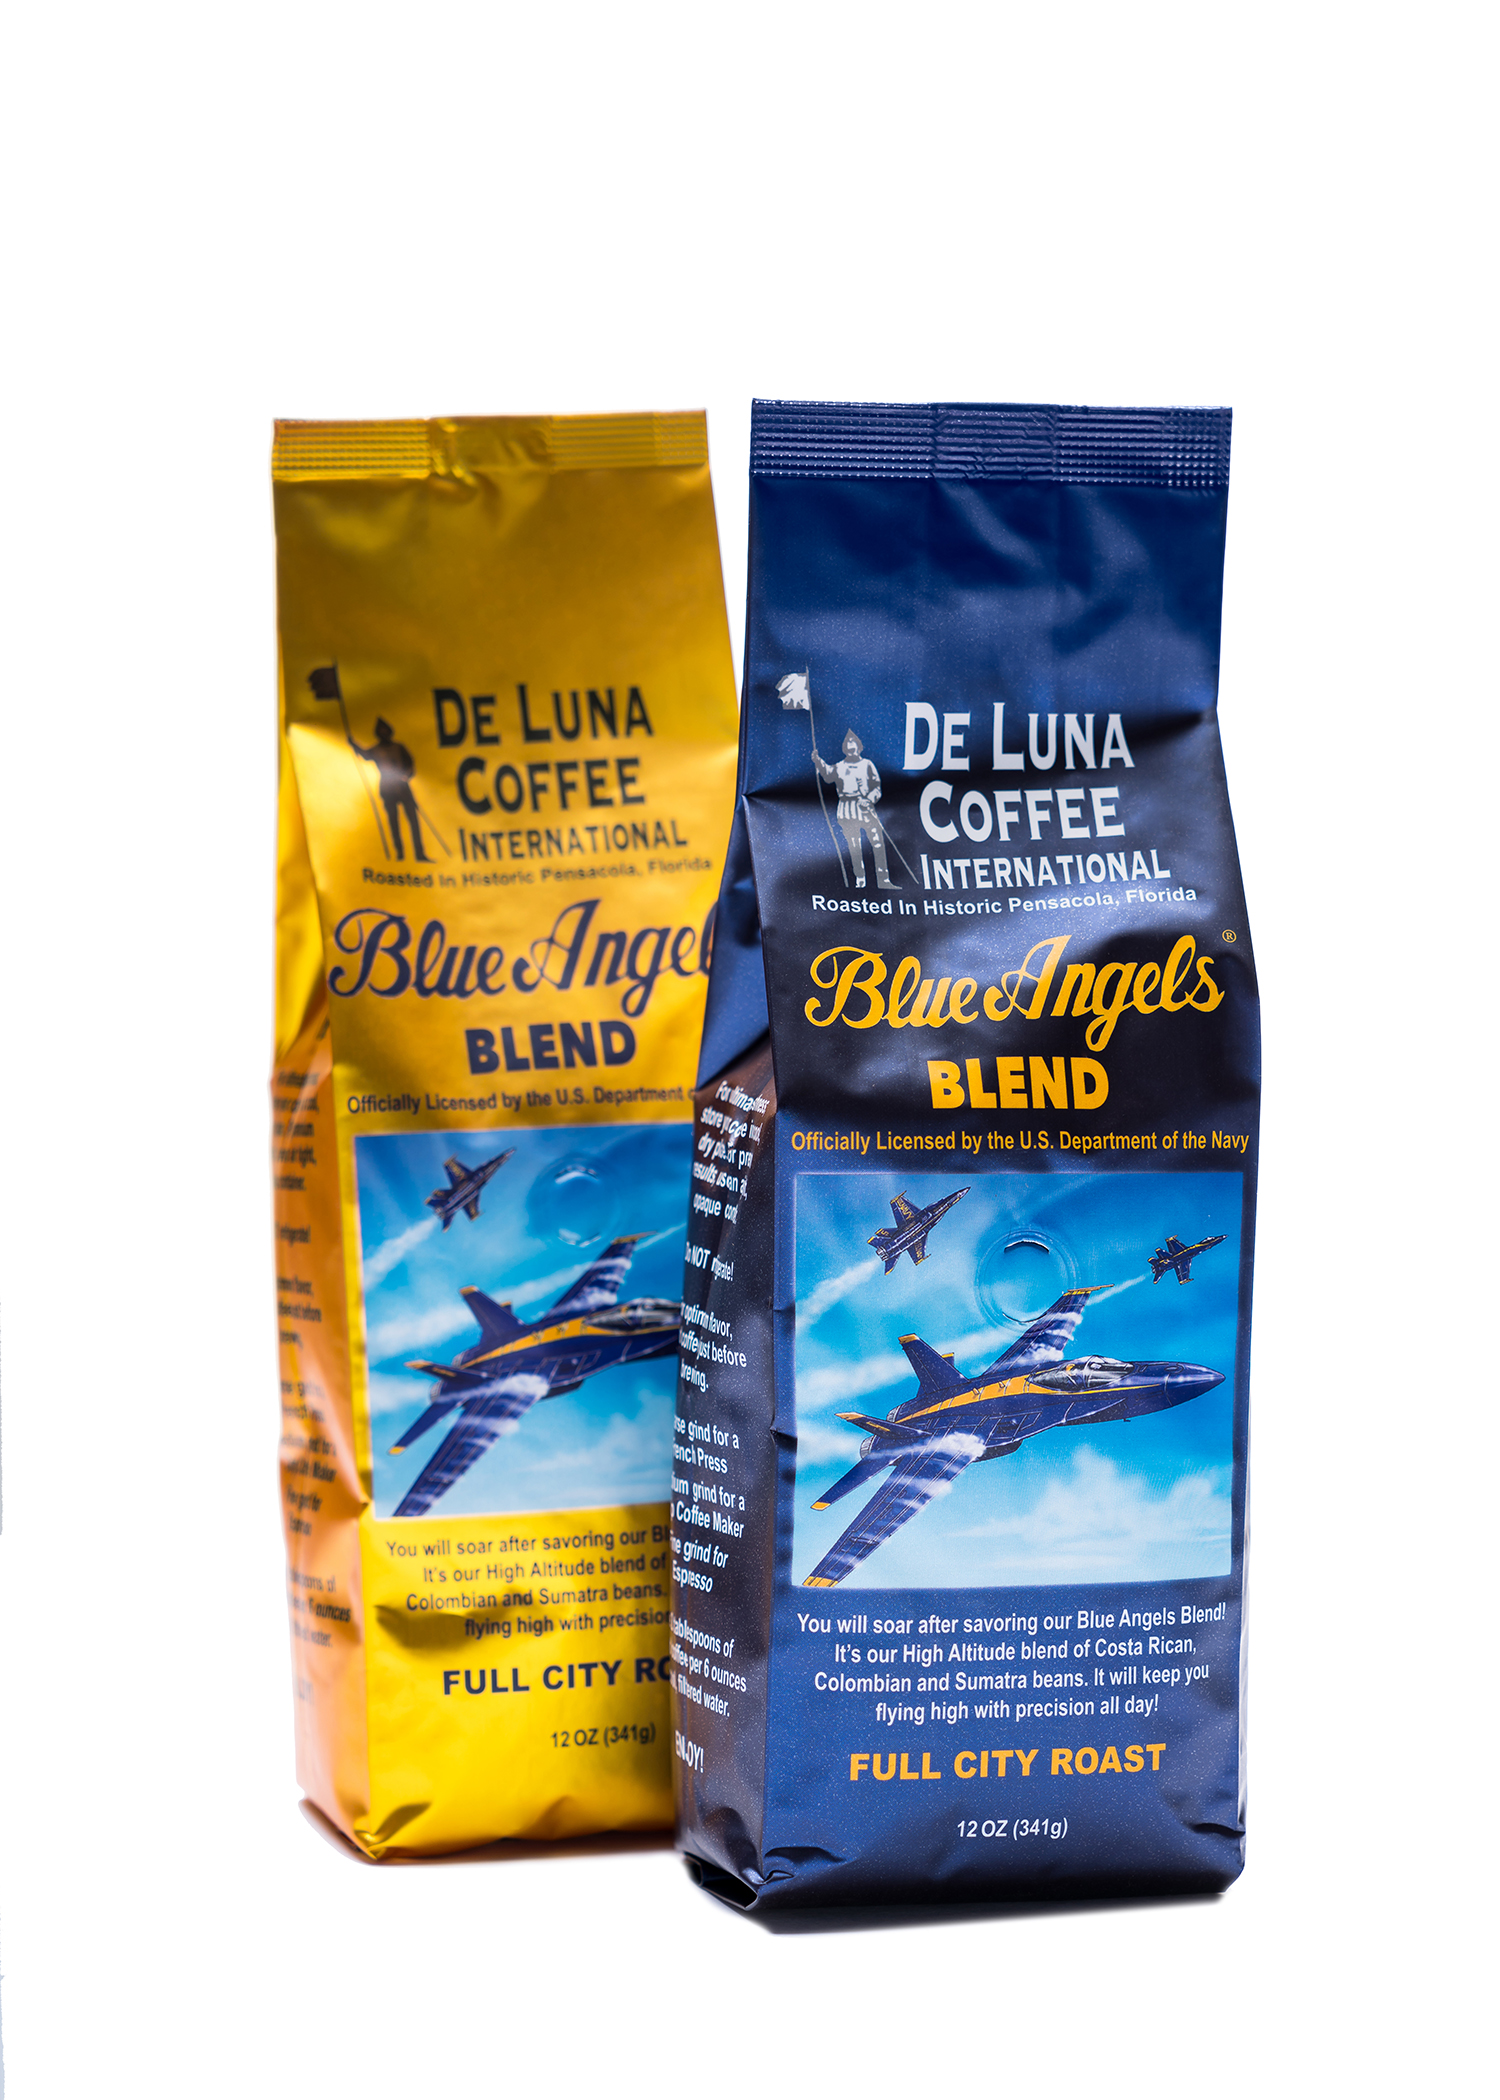 Pensacola Blue Angels coffee goes international